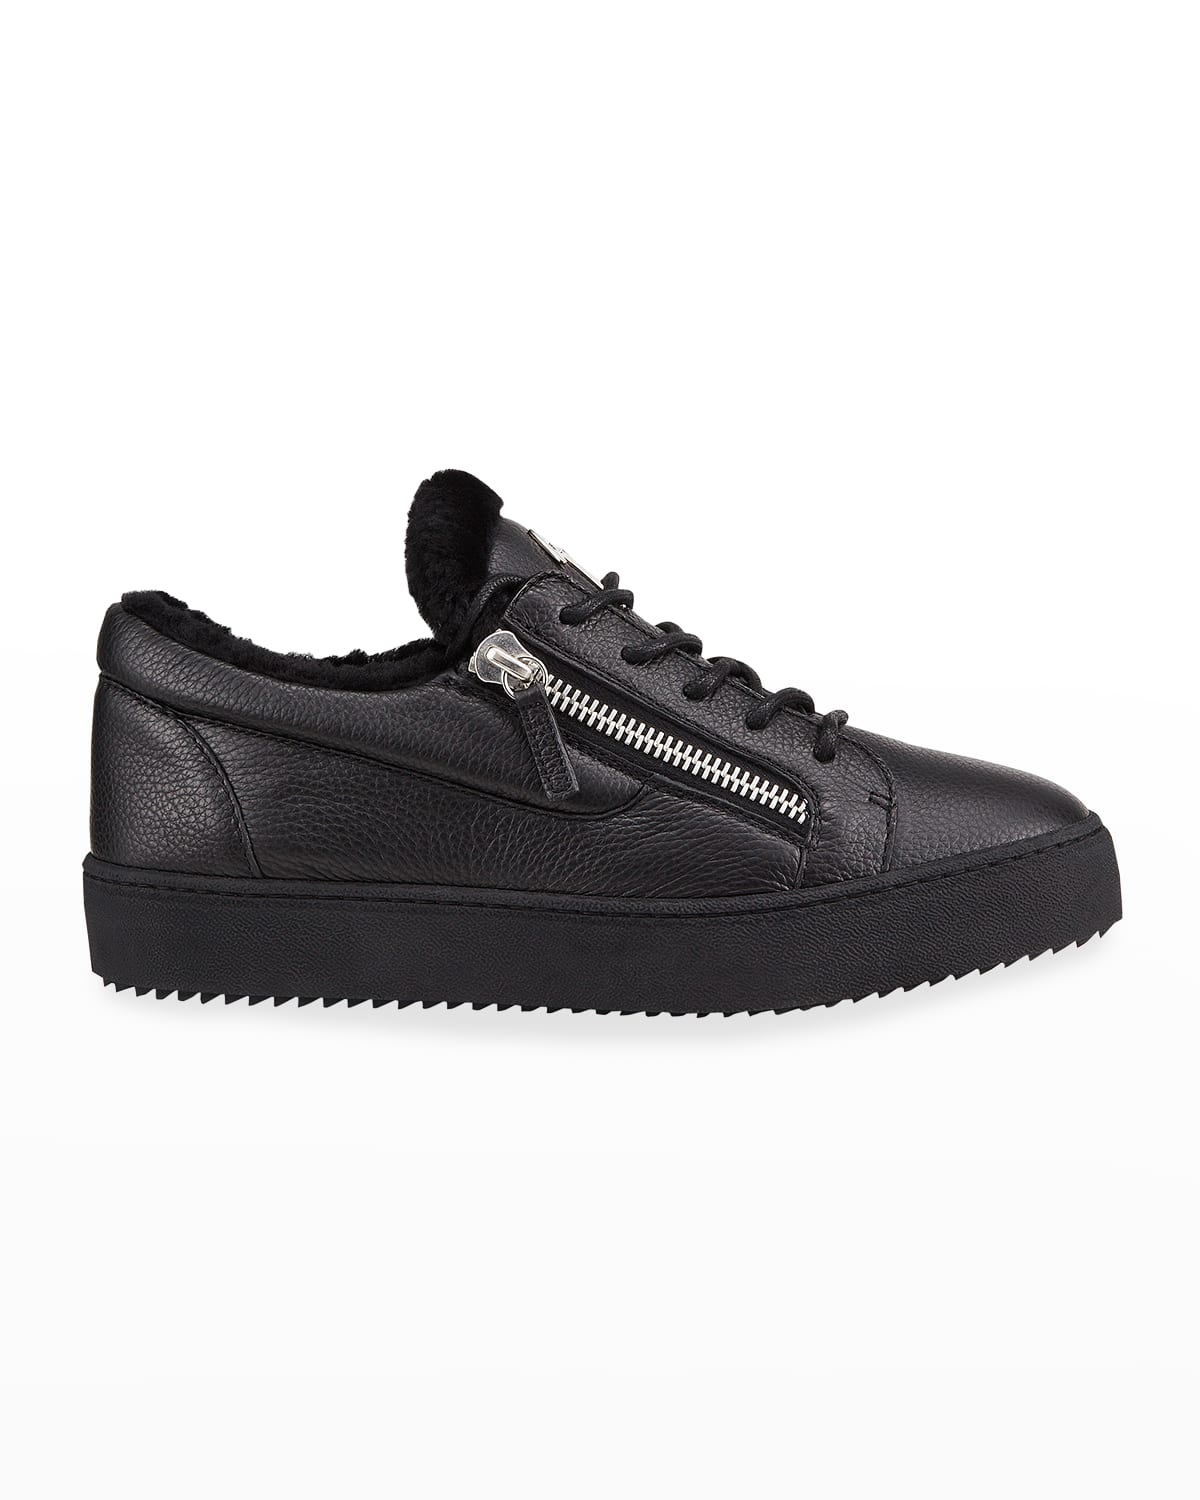 Men's Arena Leather %26 Shearling Low-Top Sneakers